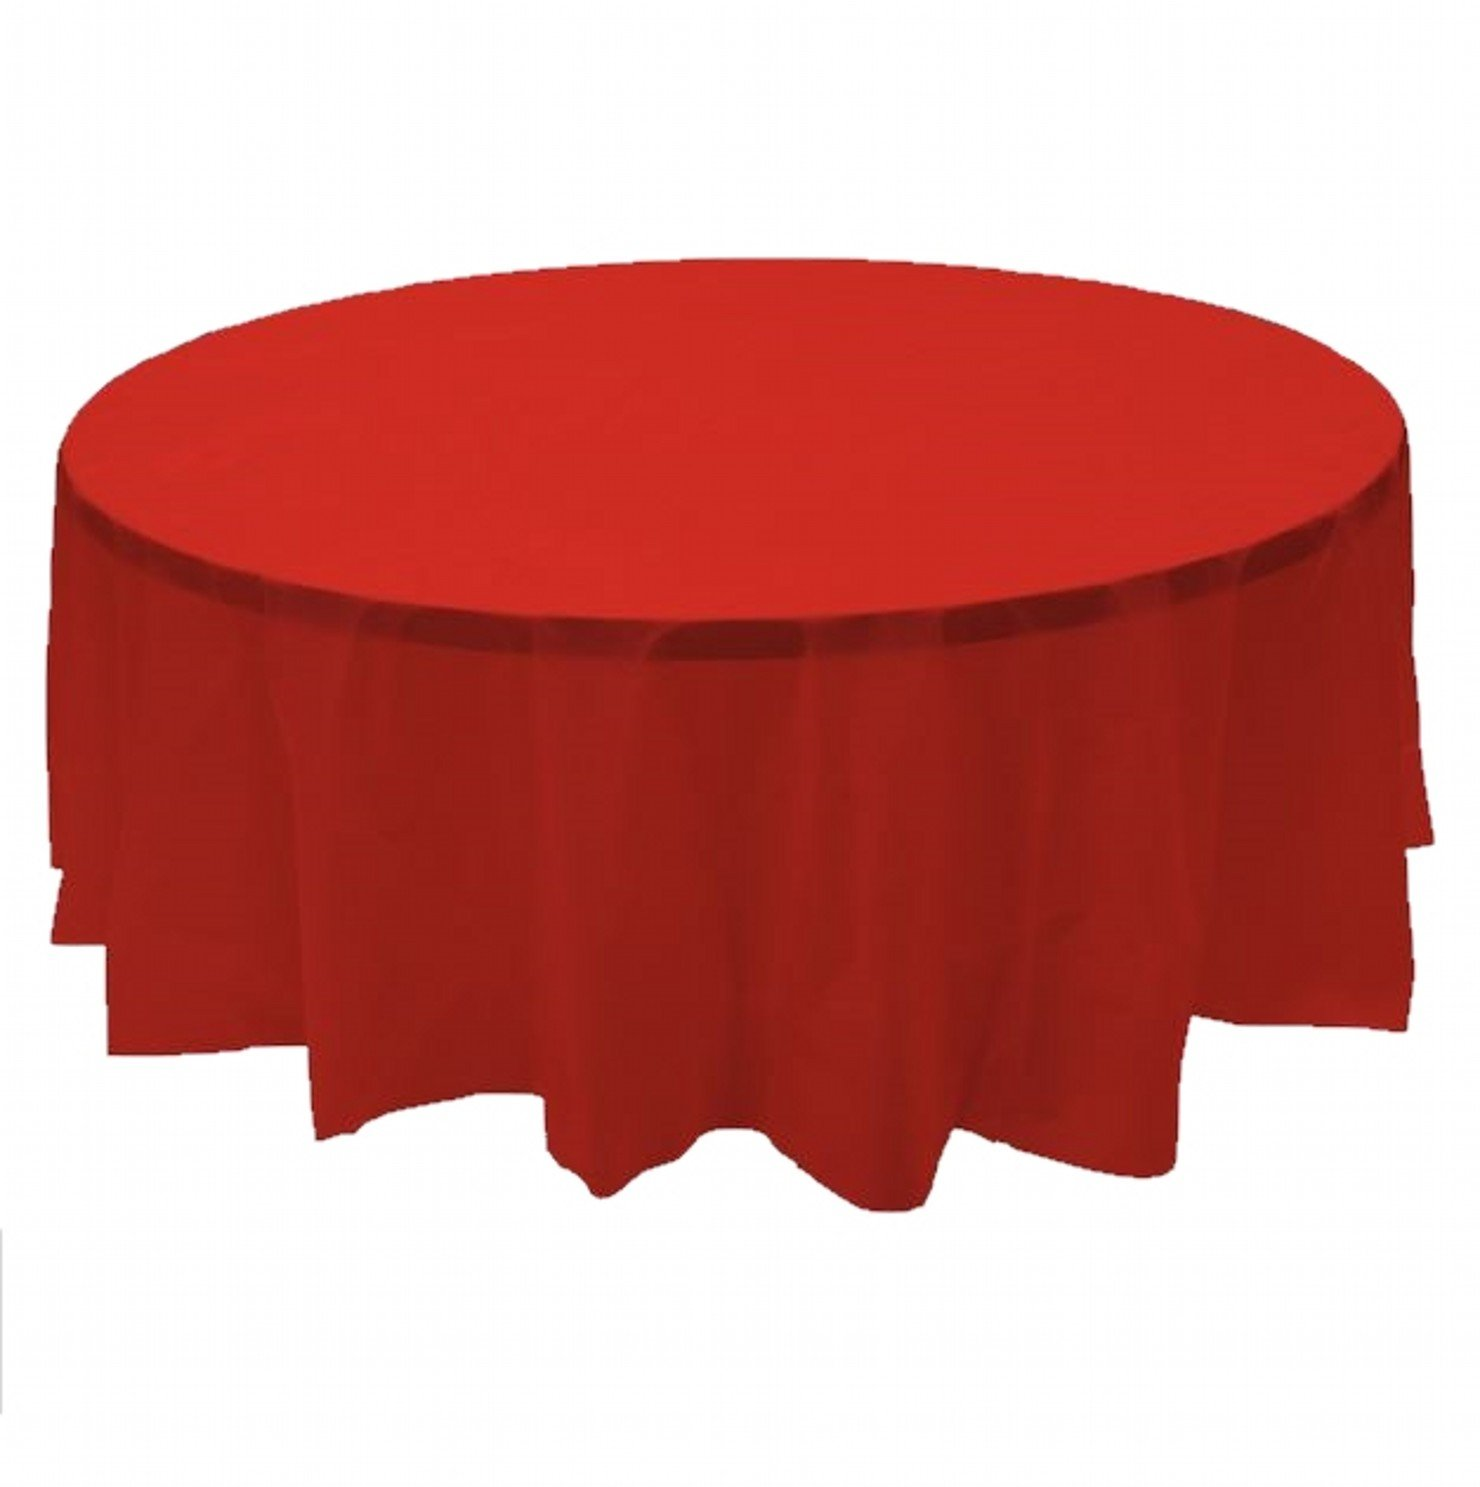 24 pcs (1 case) of Plastic Heavy Duty Premium Round tablecloths 84'' Diameter Table Cover - Red by CC